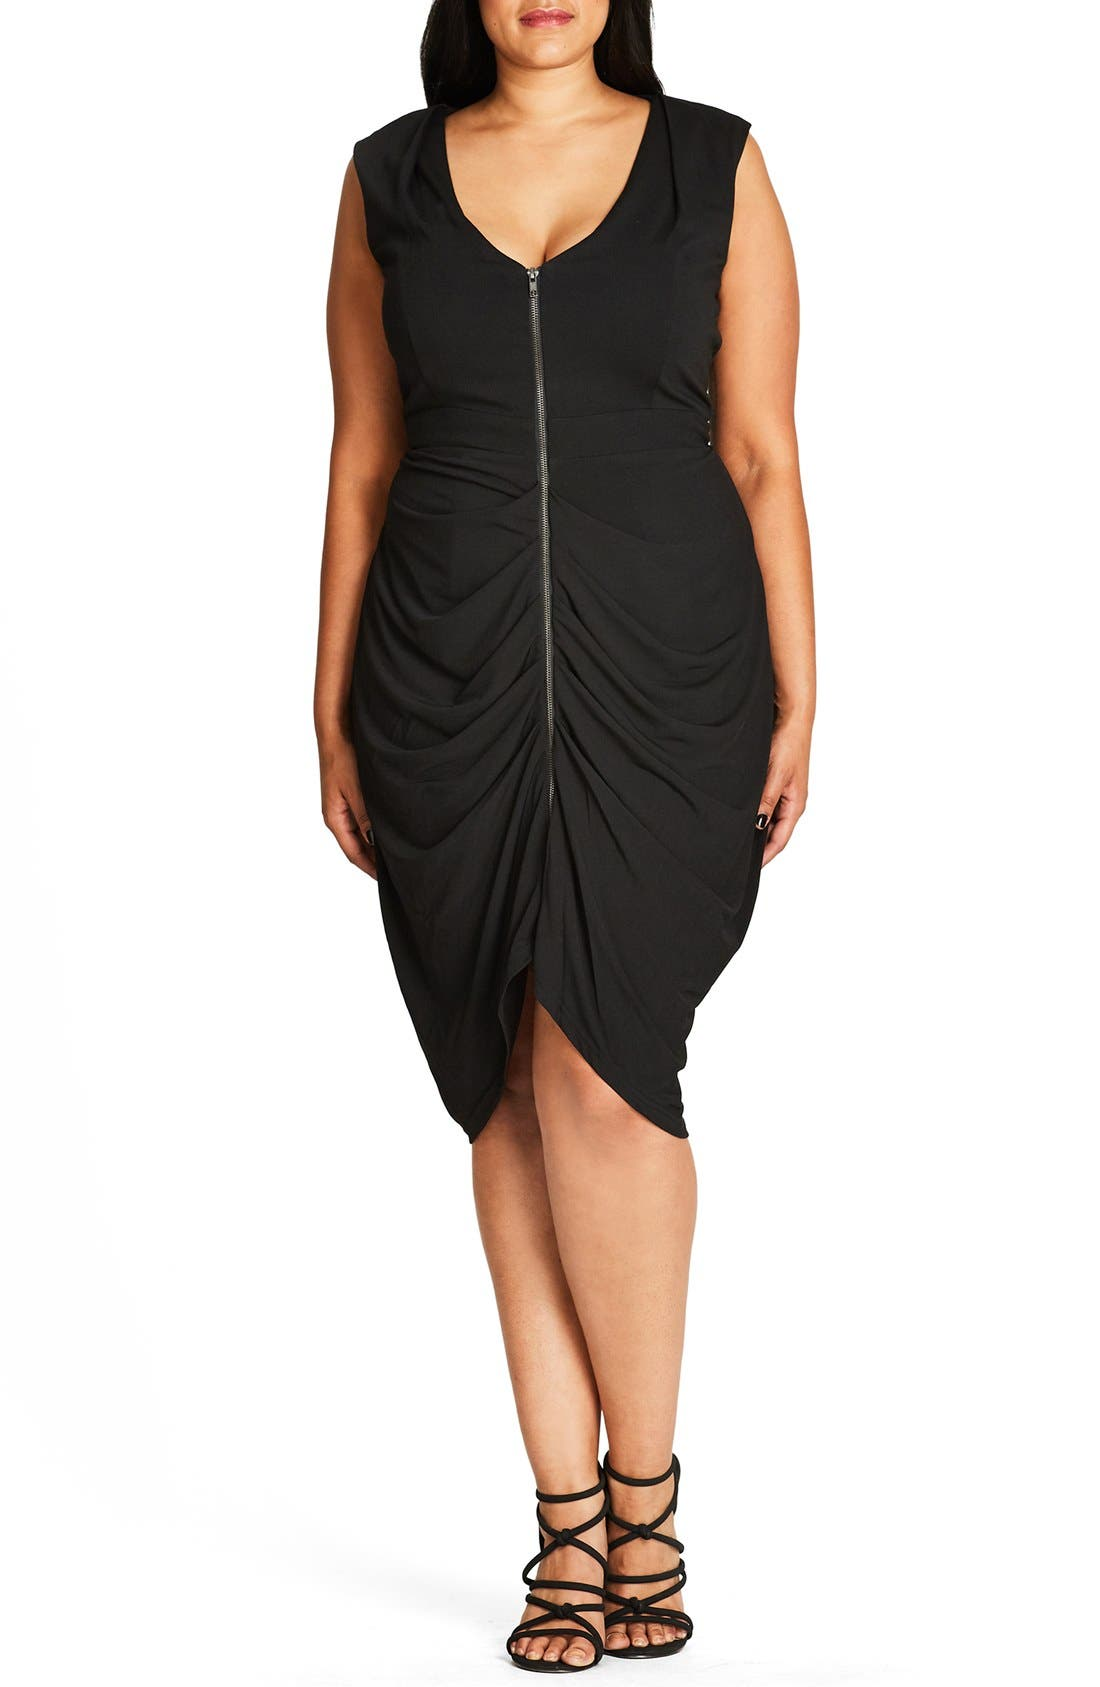 Alternate Image 1 Selected - City Chic Sleeveless Ruched Zip Front Dress (Plus Size)